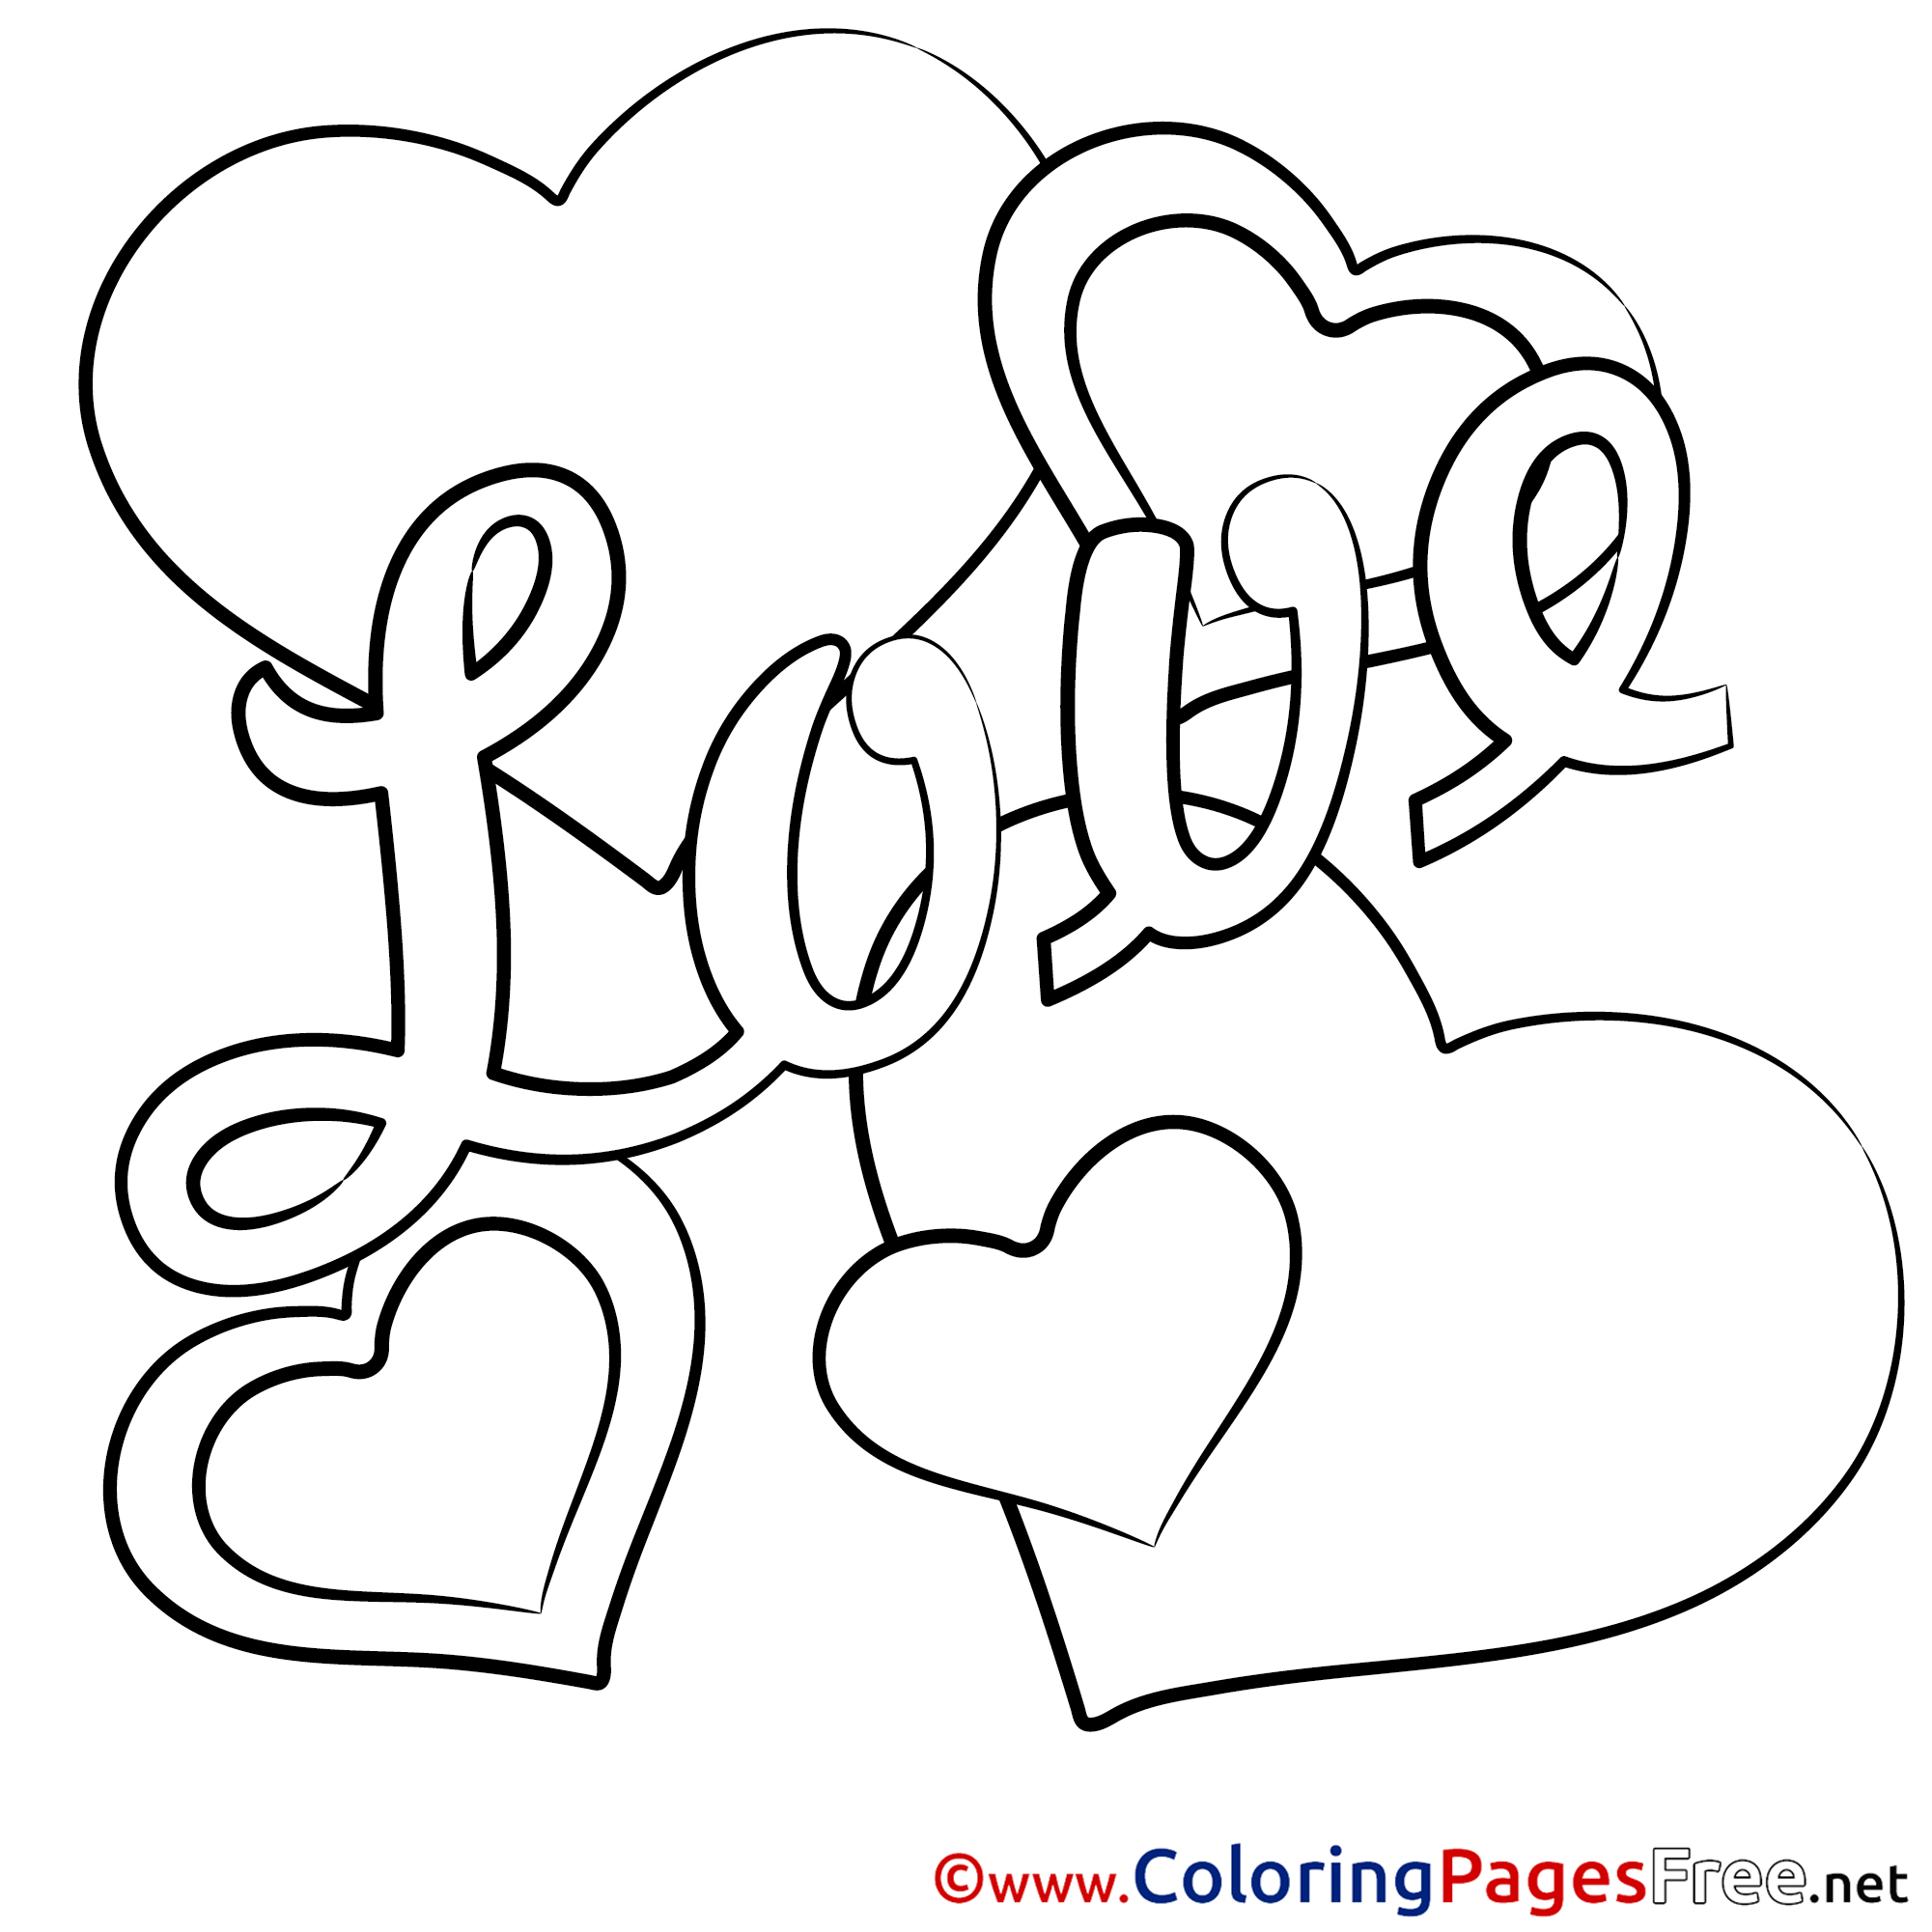 heart to color free printable heart coloring pages for kids cool2bkids color to heart